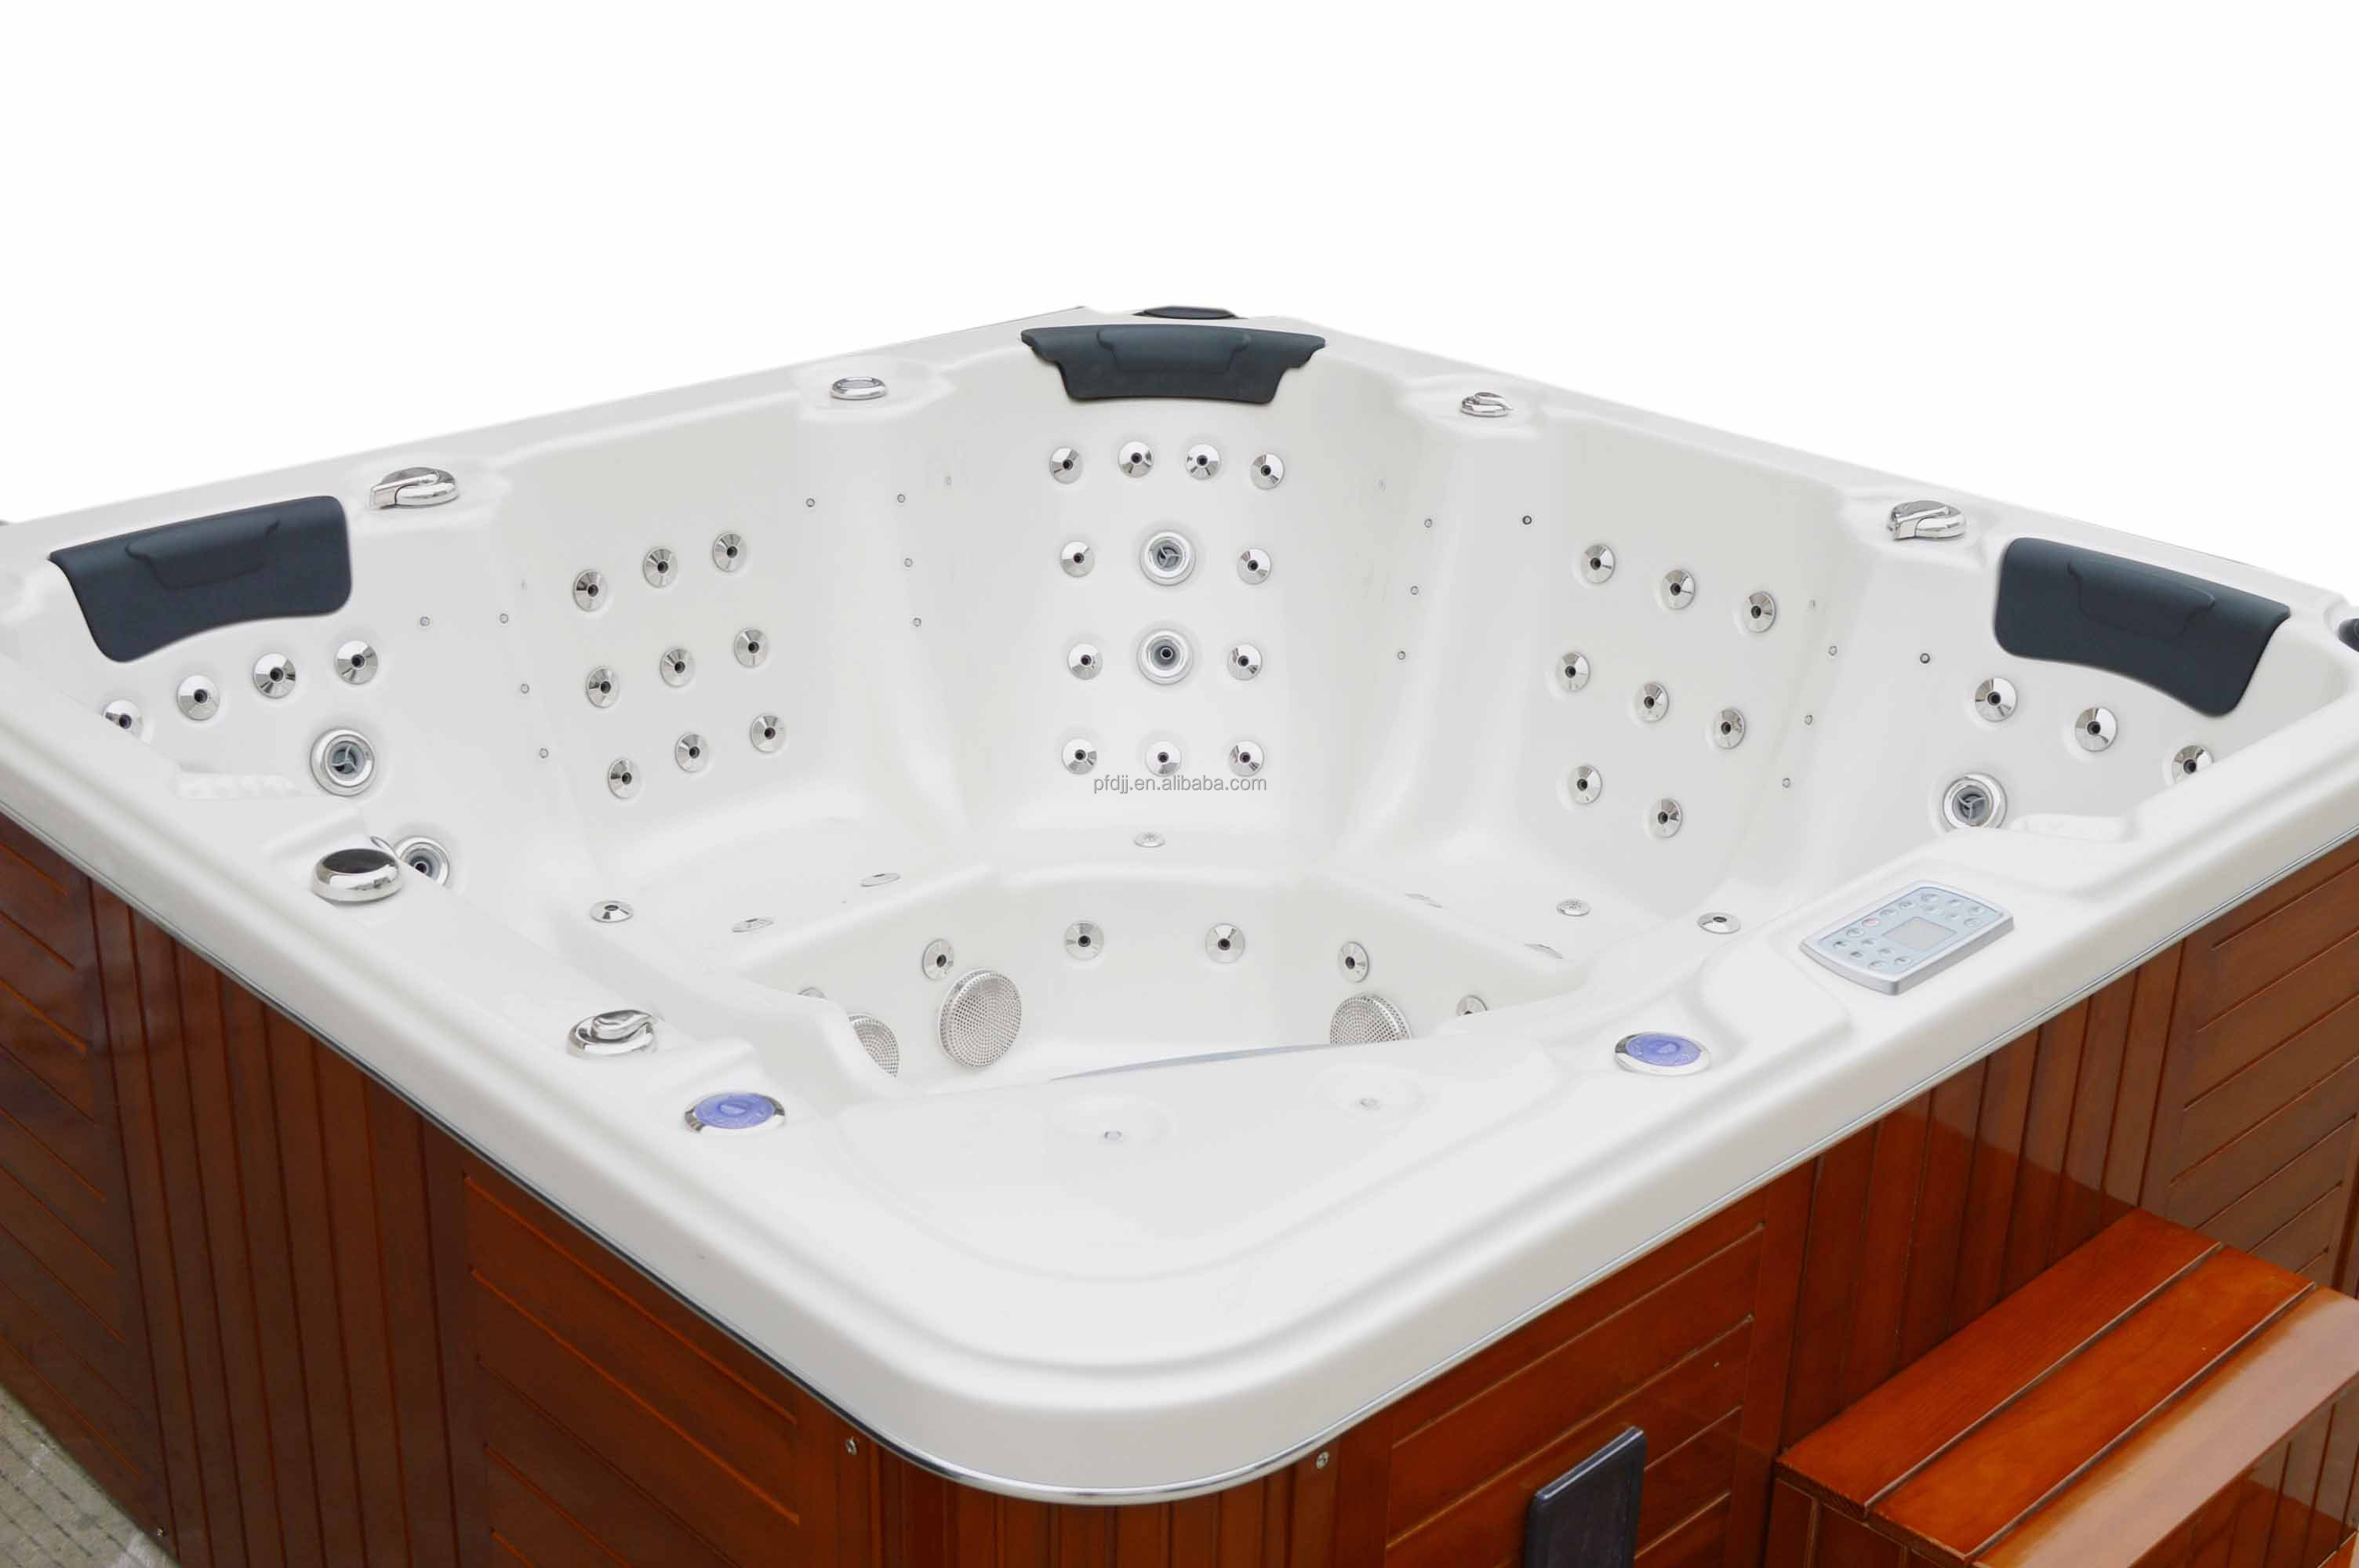 Water Bubble Massage Tub For Jacuzzi - Buy Water Bubble Massage Tub ...